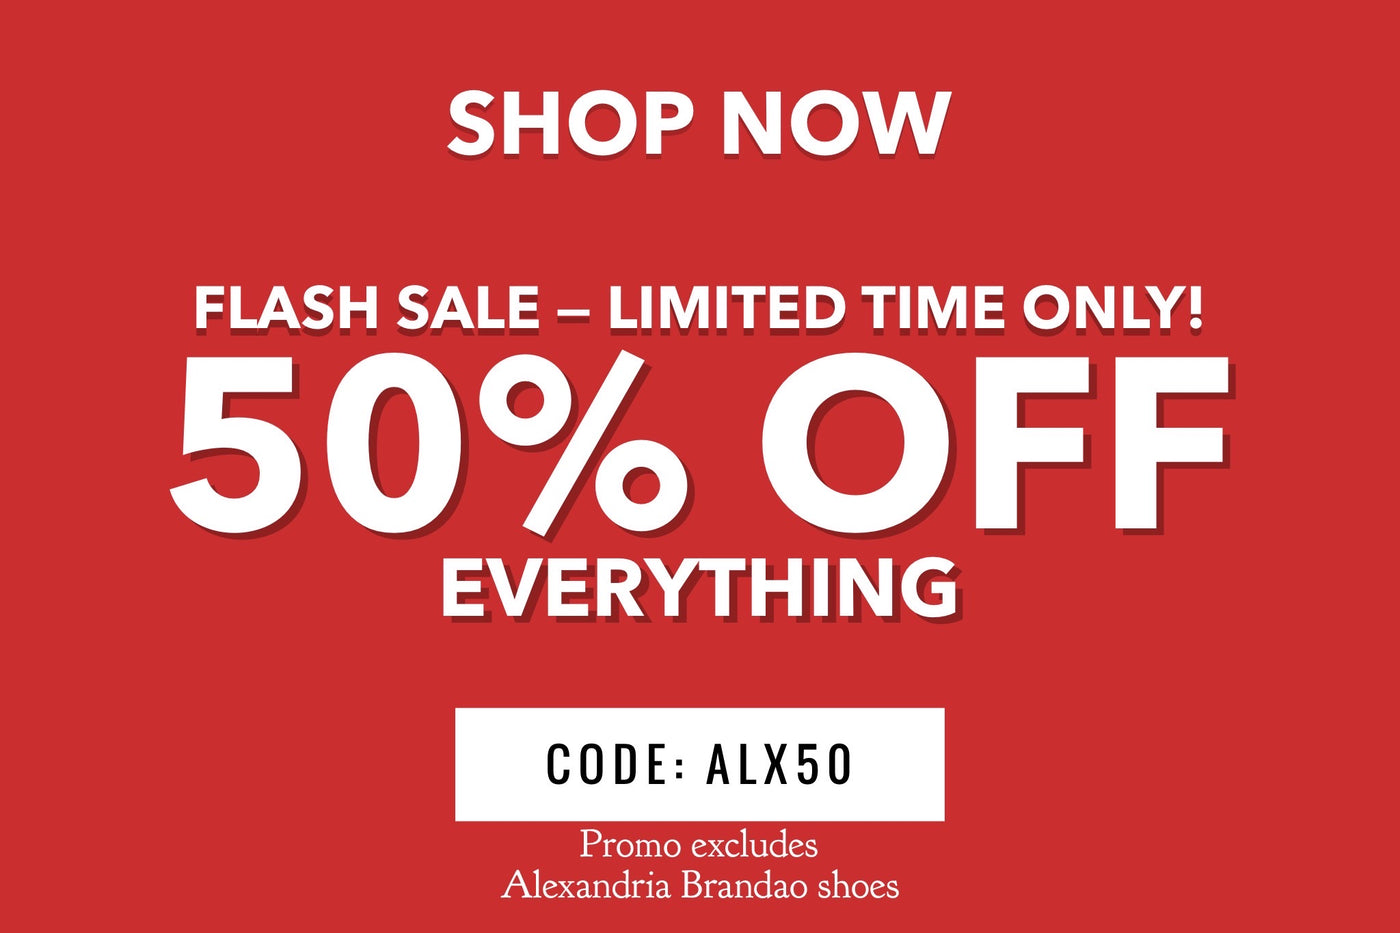 50% OFF EVERYTHING SALE